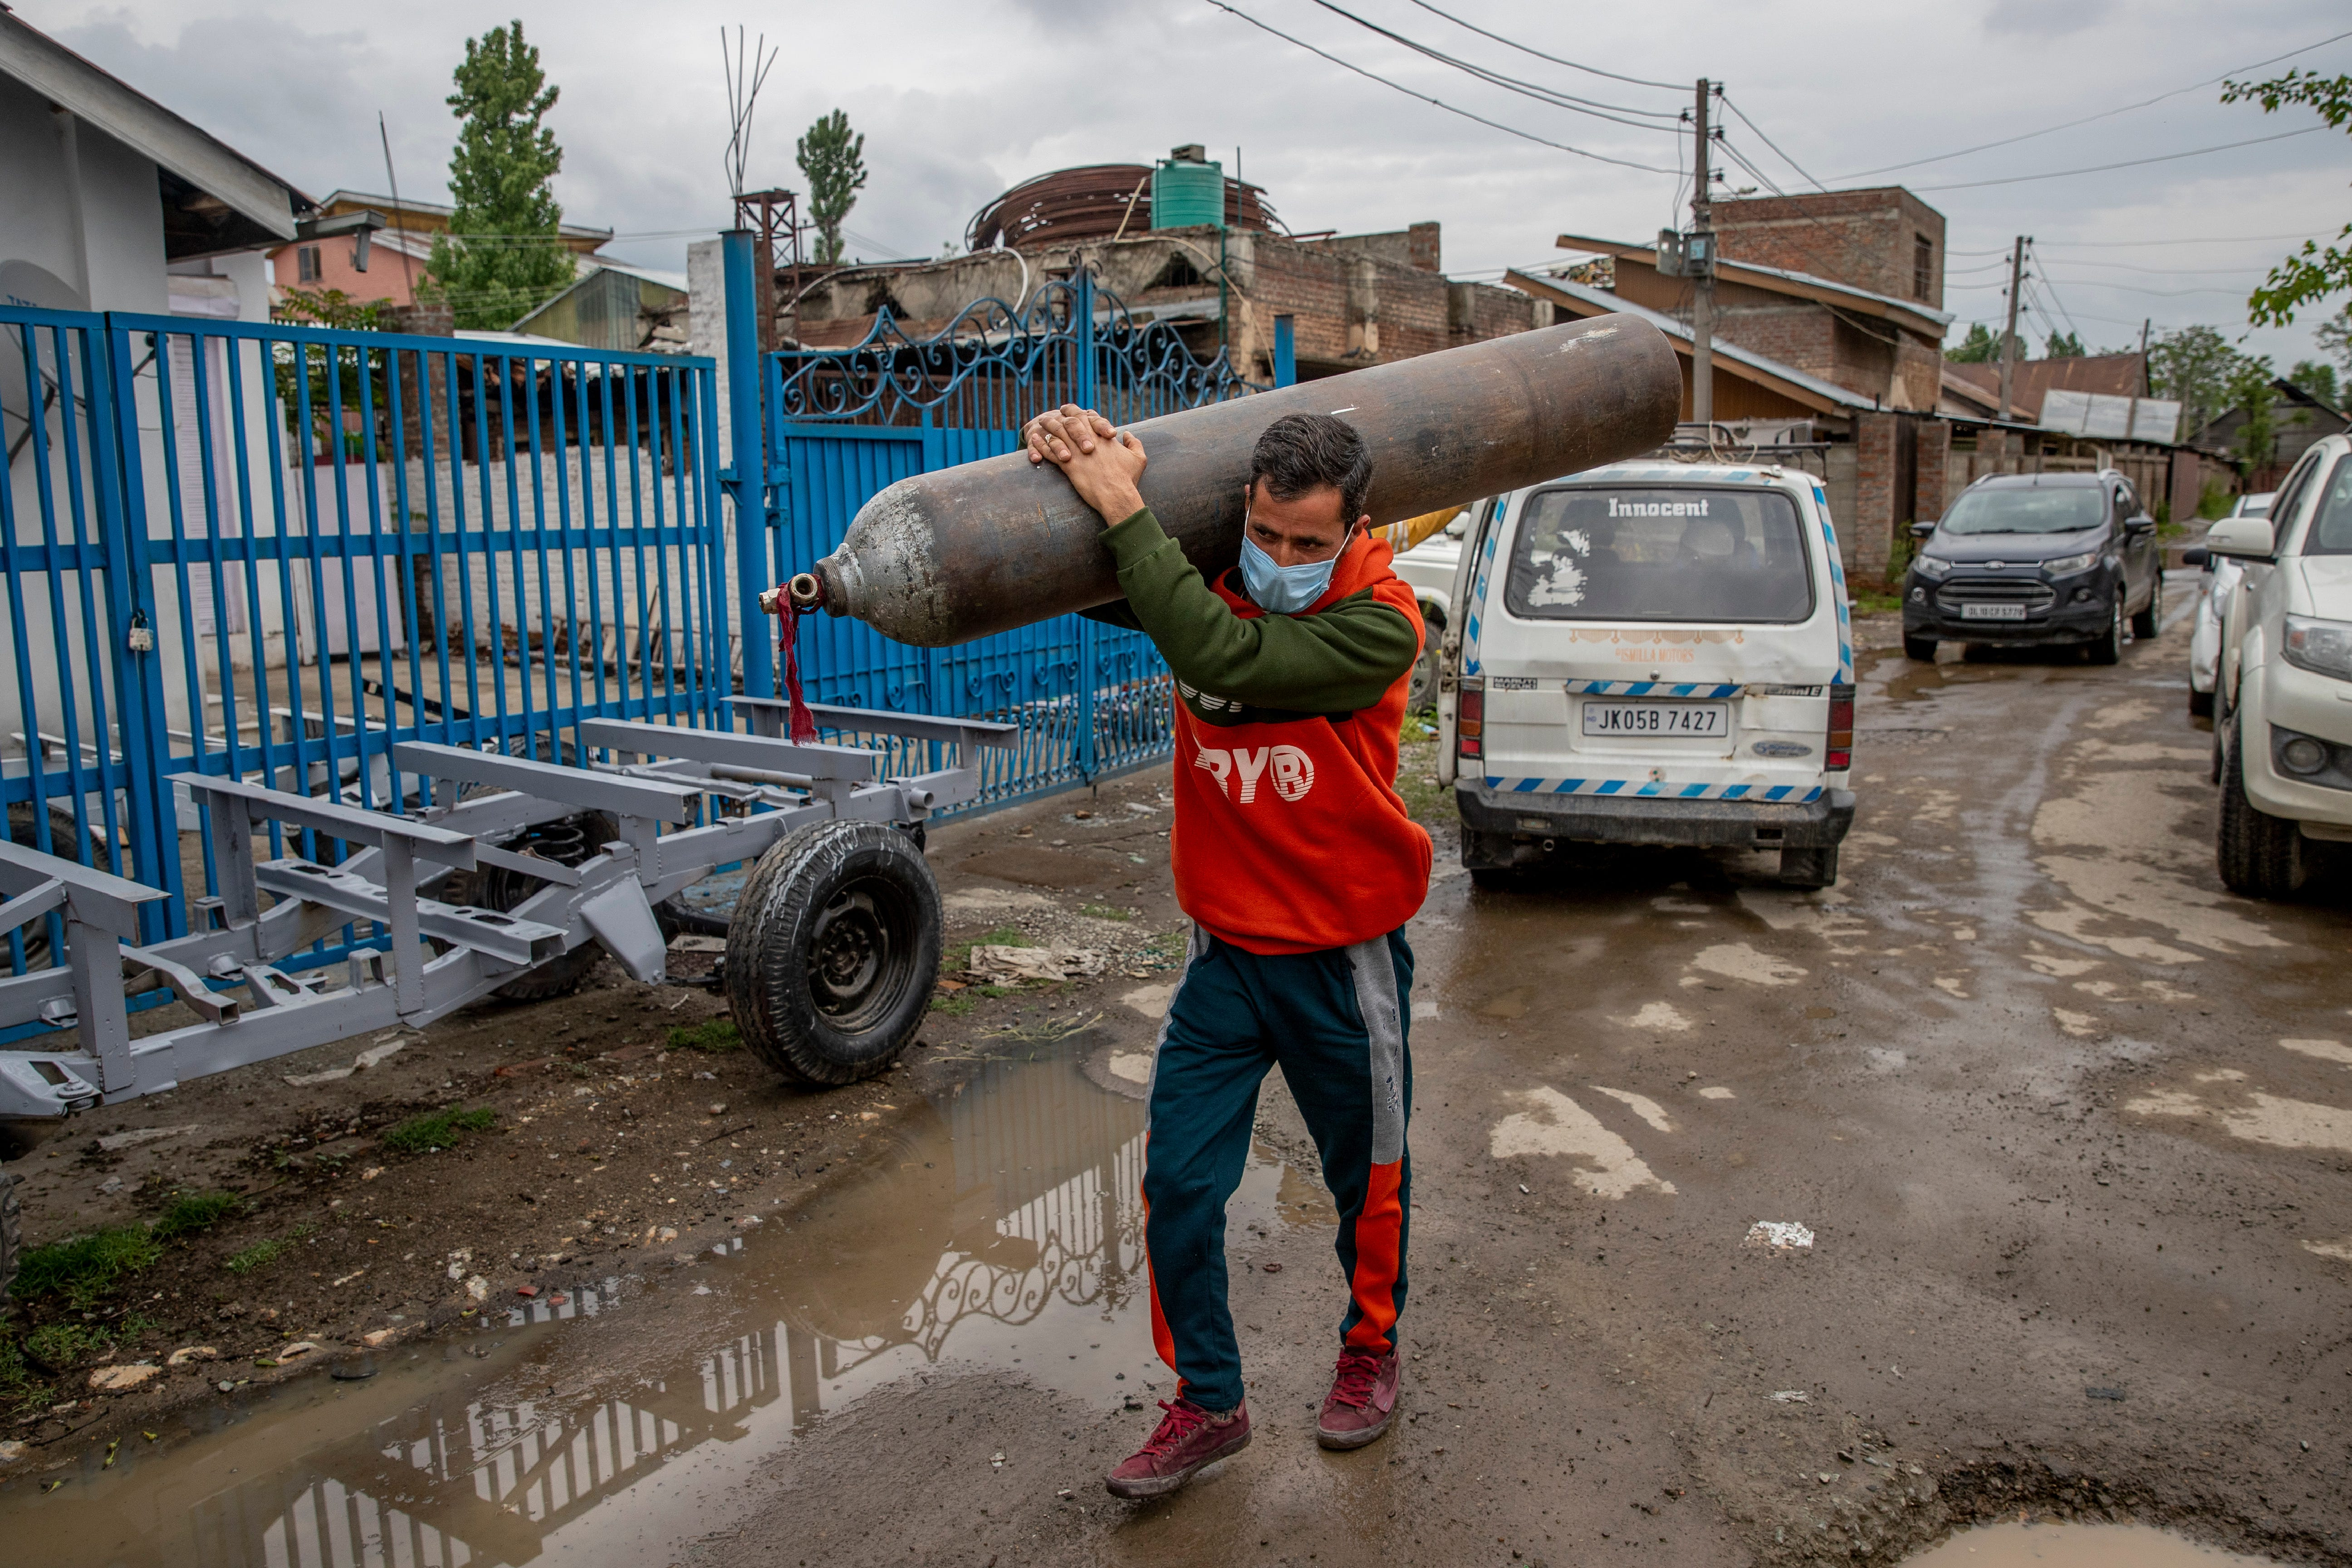 Showkat Ahmed War carries an empty oxygen cylinder to get it refilled at a gas supplier facility in Srinagar, Kashmir, which is controlled by India, on May 11, 2021. War traveled about 40 miles to refill the cylinder needed for his ailing father due to the huge demand for oxygen after the surge in COVID-19 cases.